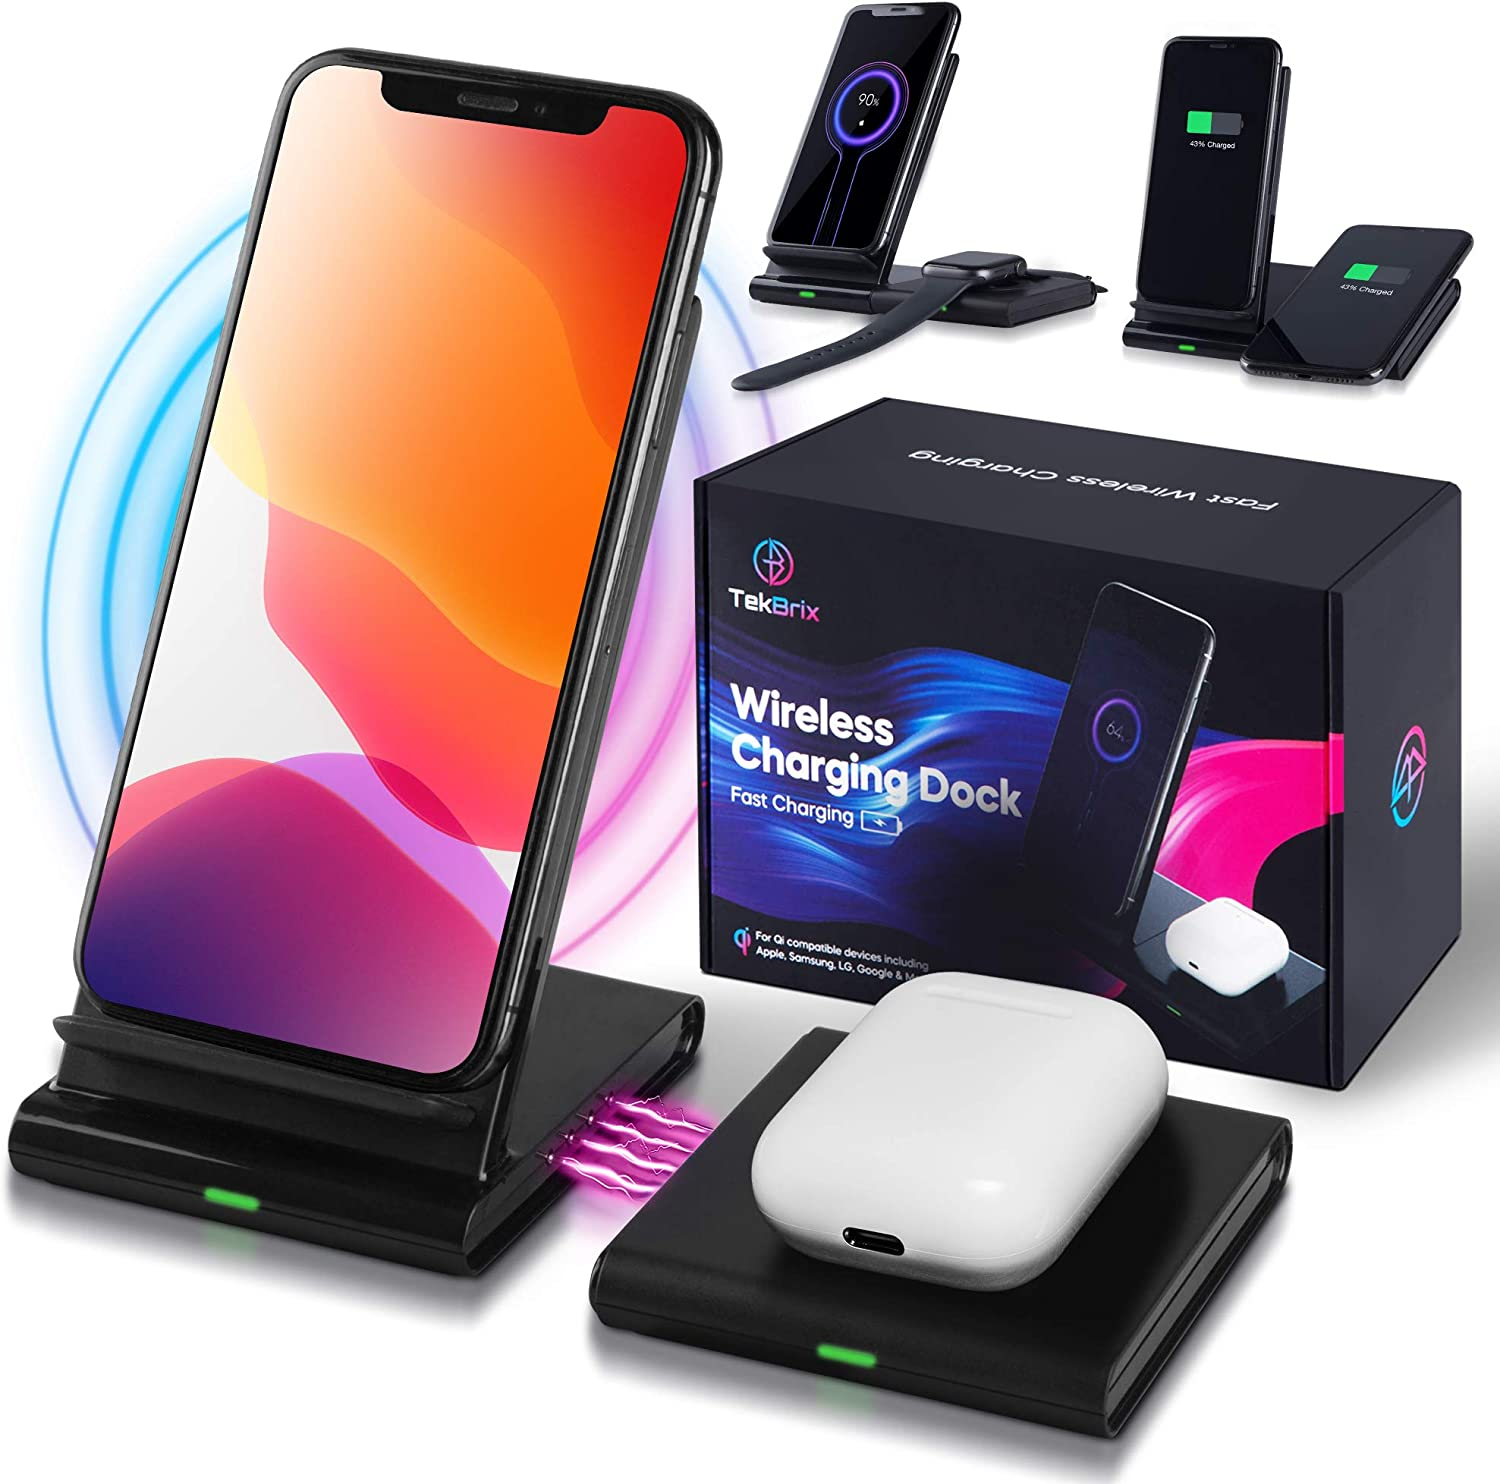 TekBrix Wireless Charger 2 in 1 - Dual Wireless Charging Dock - Fast Charger 10W Max - for Qi Devices, iPhone 11/11 Pro/11 Pro Max/XR/Xs Max/XS/X/8/8+, Samsung S20/S10/S9, Note 10/9 - No Adapter